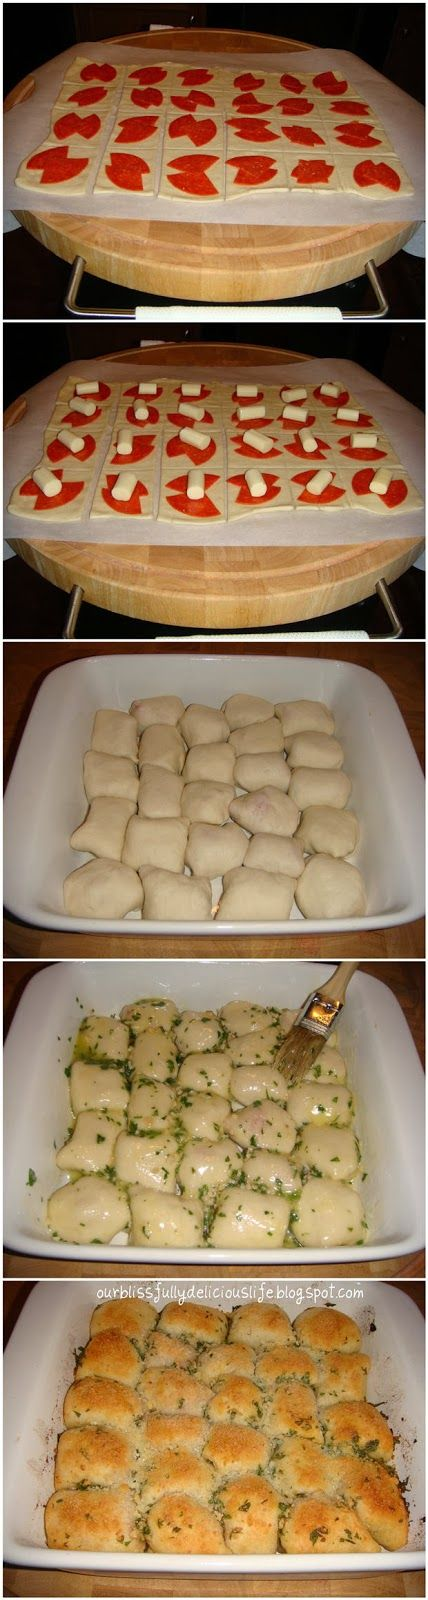 Stuffed Pizza Rolls!